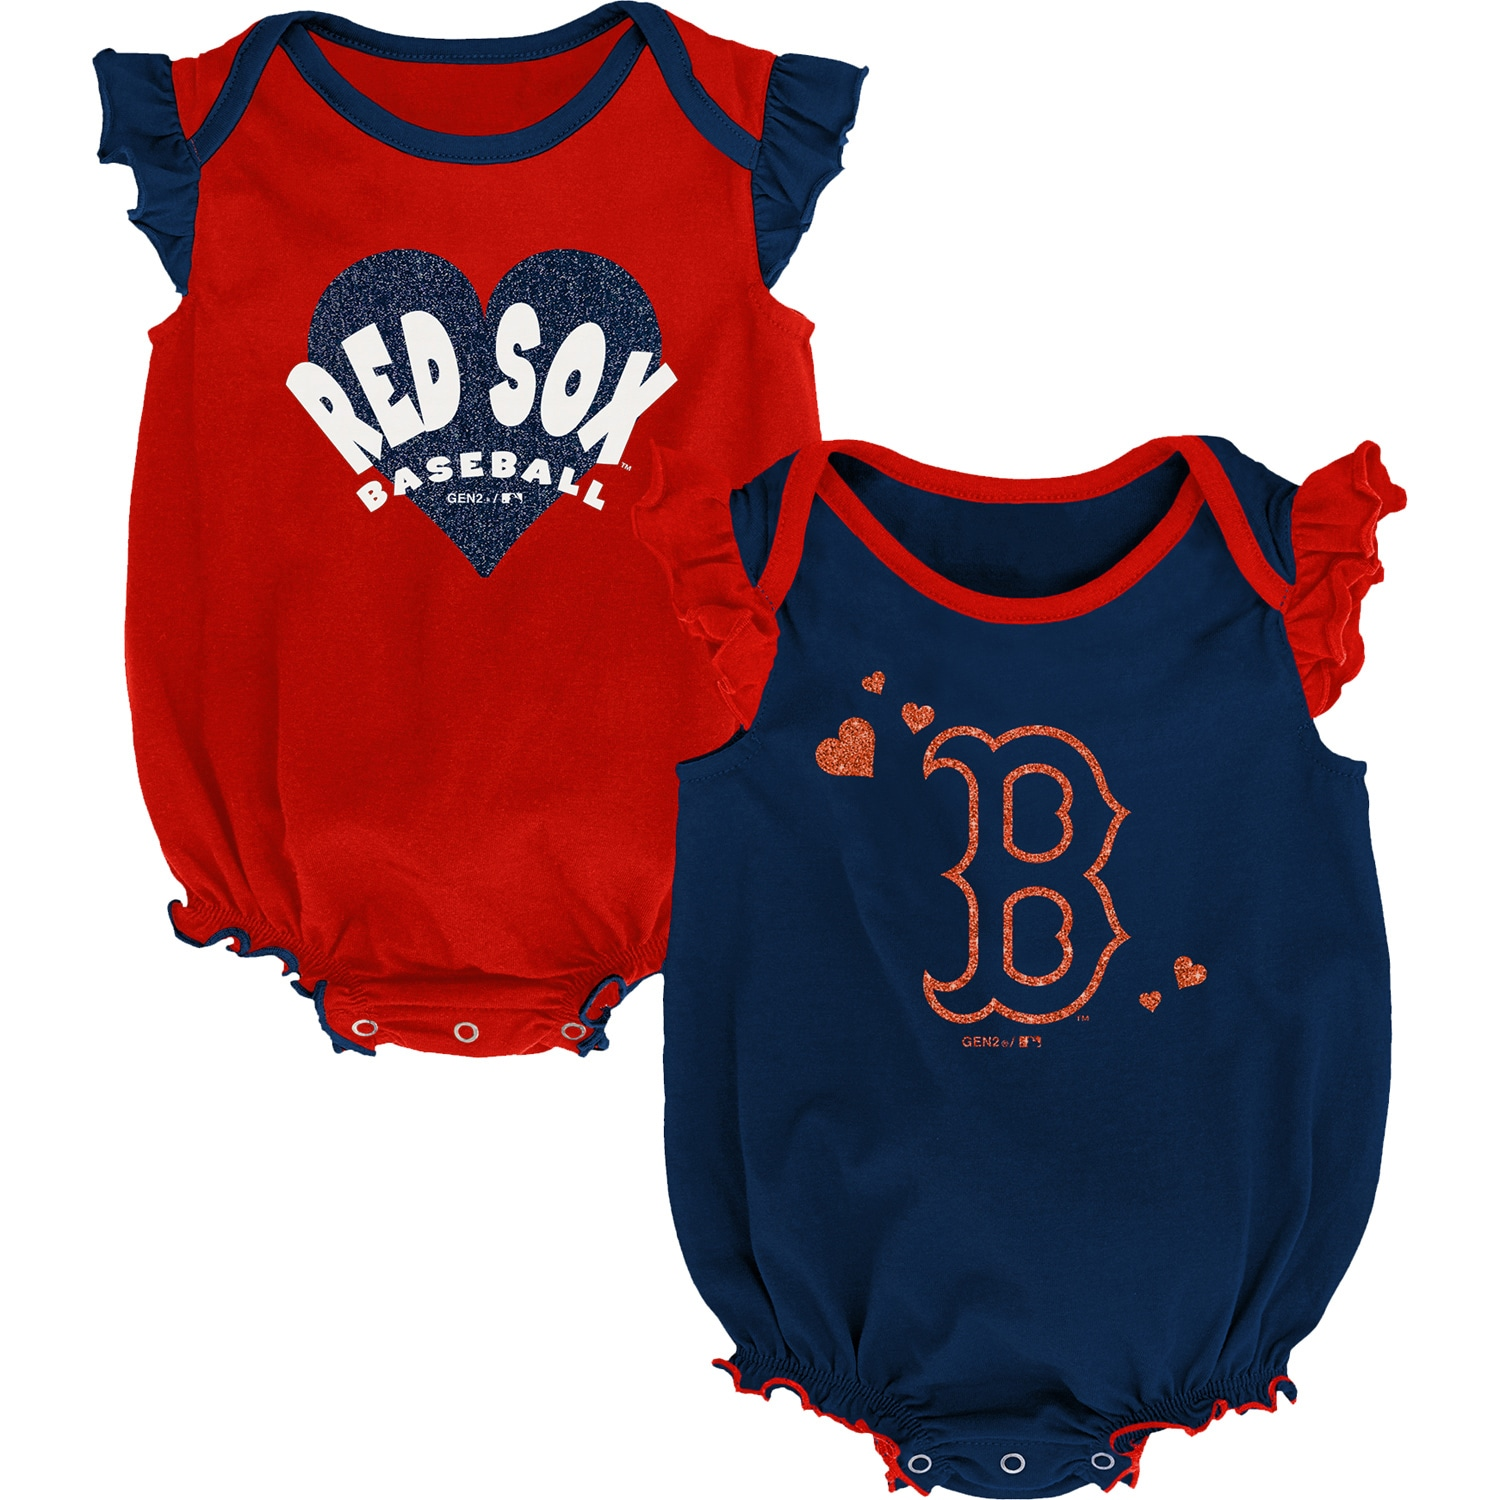 Boston Red Sox Girls Newborn & Infant Double Trouble Two-Pack Bodysuit Set - Navy/Red